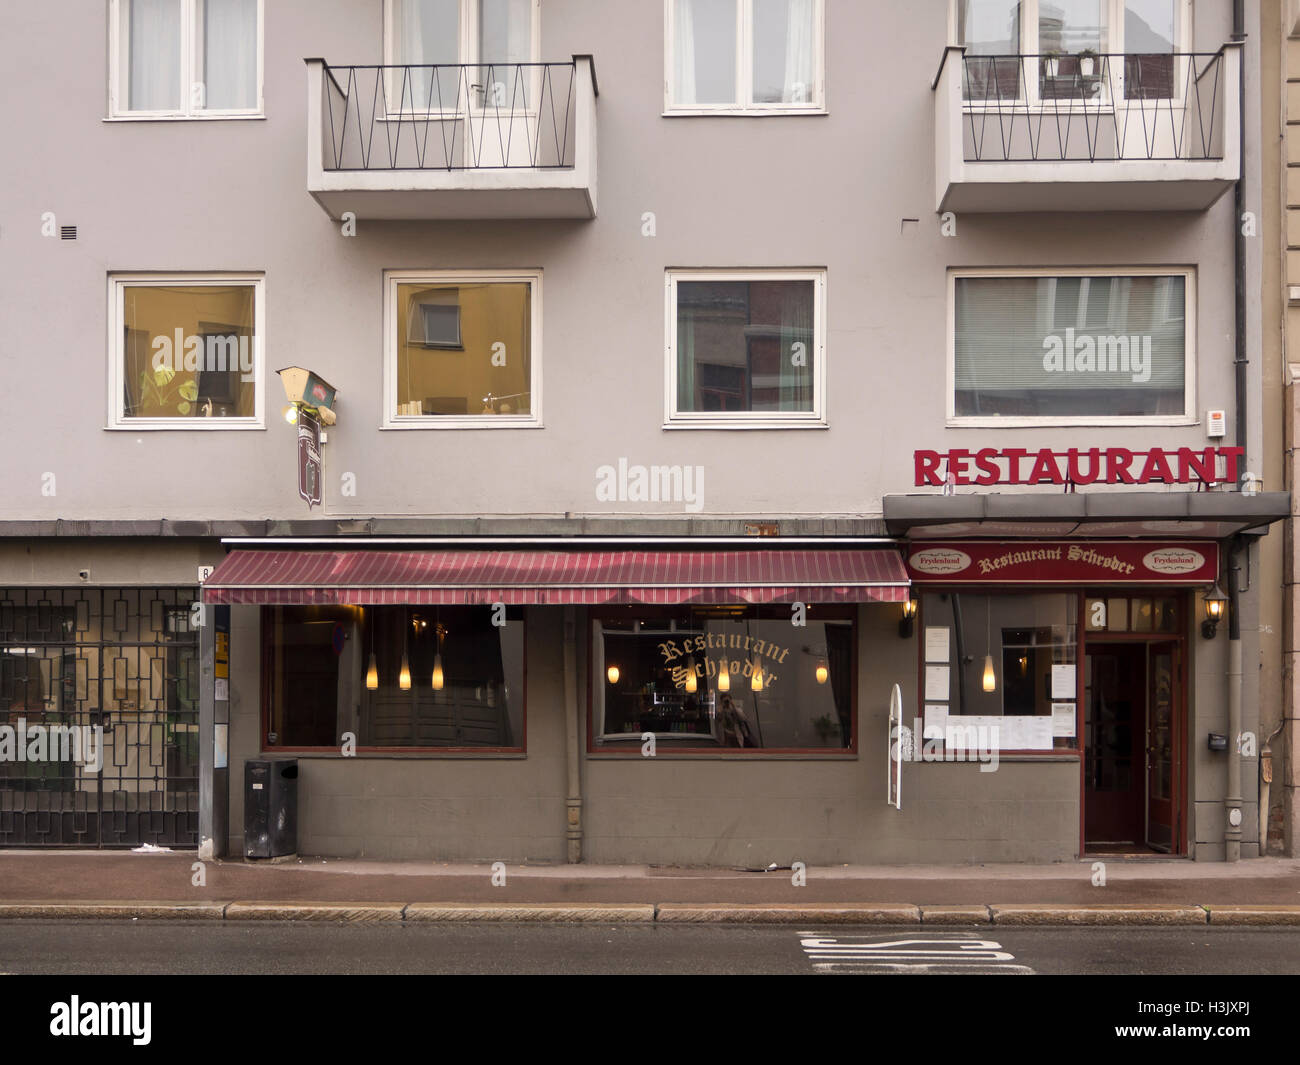 Restaurant Schr�der In Oslo Traditional Beer Stop And Favorite Of The  Detective Harry Hole In Jon